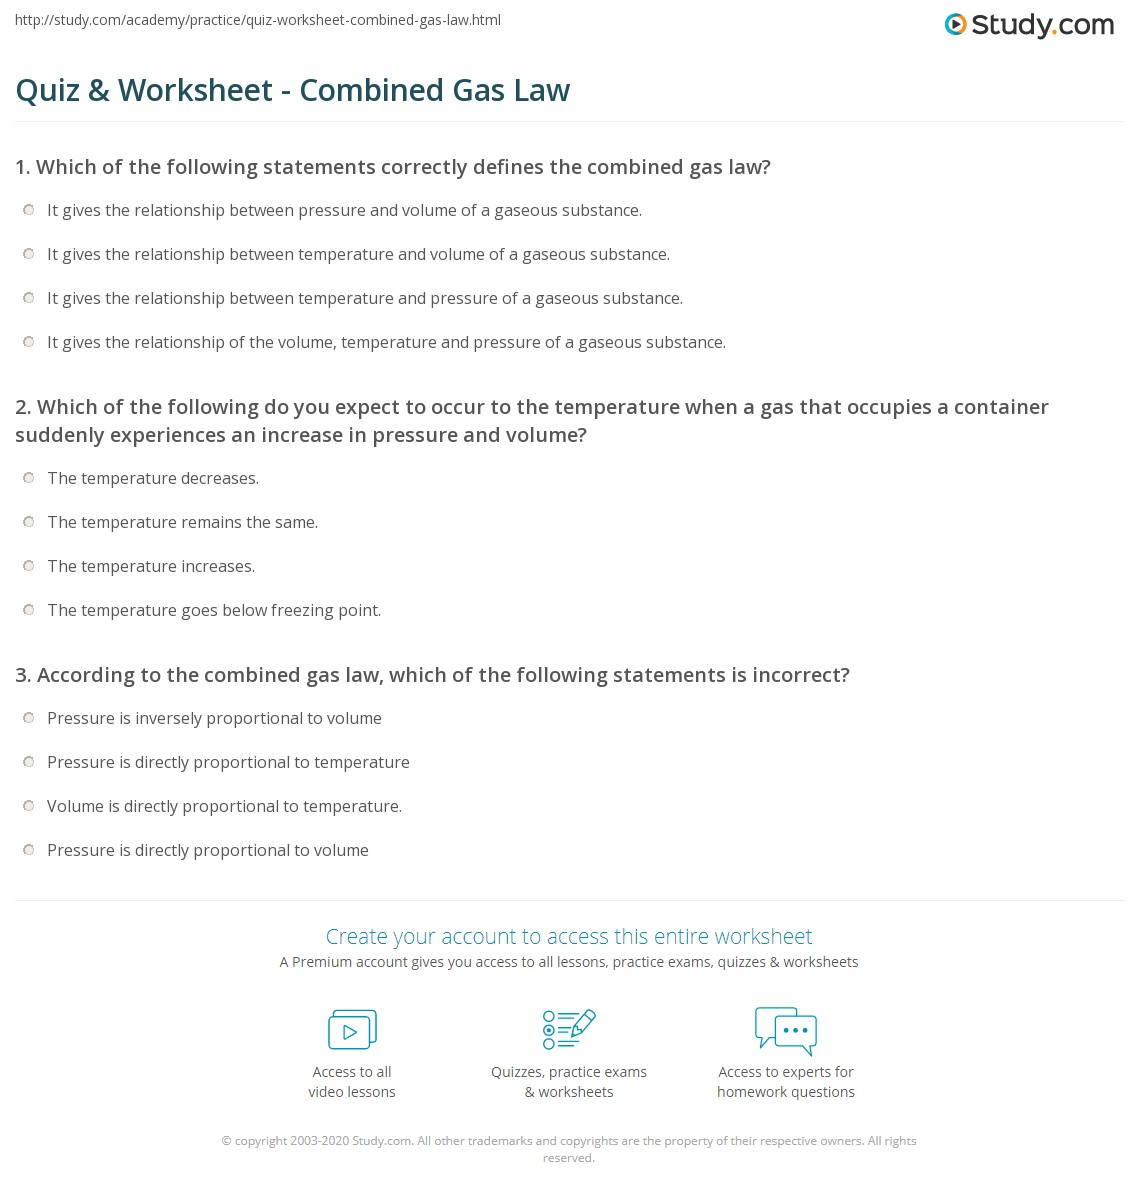 Quiz & Worksheet - Combined Gas Law | Study.com